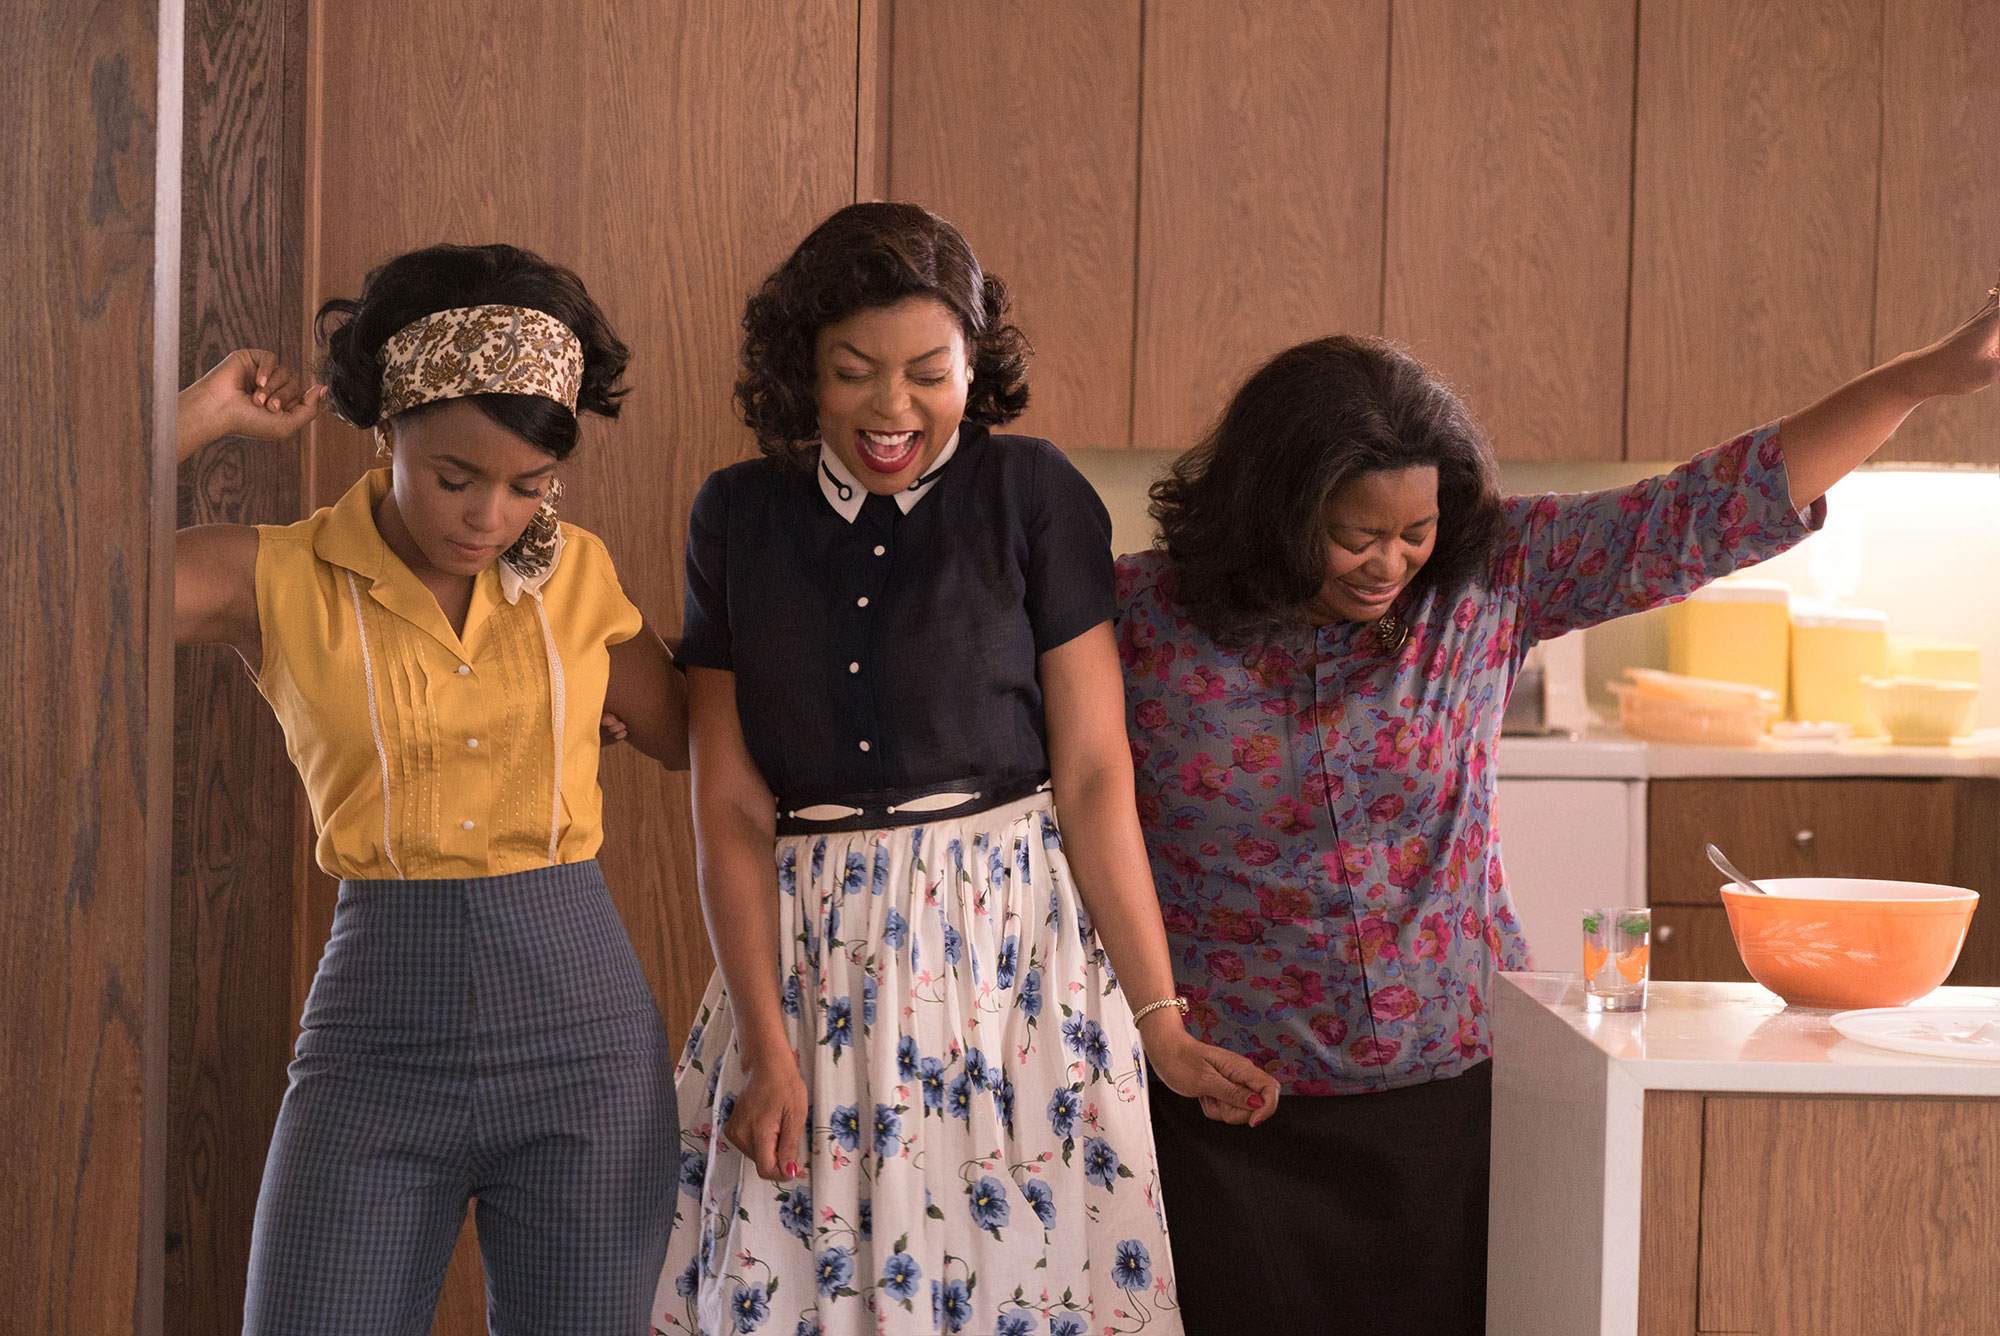 DF-03283_R3 - Mary Jackson (Janelle Monae, left), Katherine Johnson (Taraji P. Henson) and Dorothy Vaughan (Octavia Spencer) celebrate their stunning achievements in one of the greatest operations in history. Photo Credit: Hopper Stone. Hidden Figures Day 17 TM & © 2016 Twentieth Century Fox Film Corporation. All Rights Reserved. Not for sale or duplication. Hidden Figures HIDDEN FIGURES